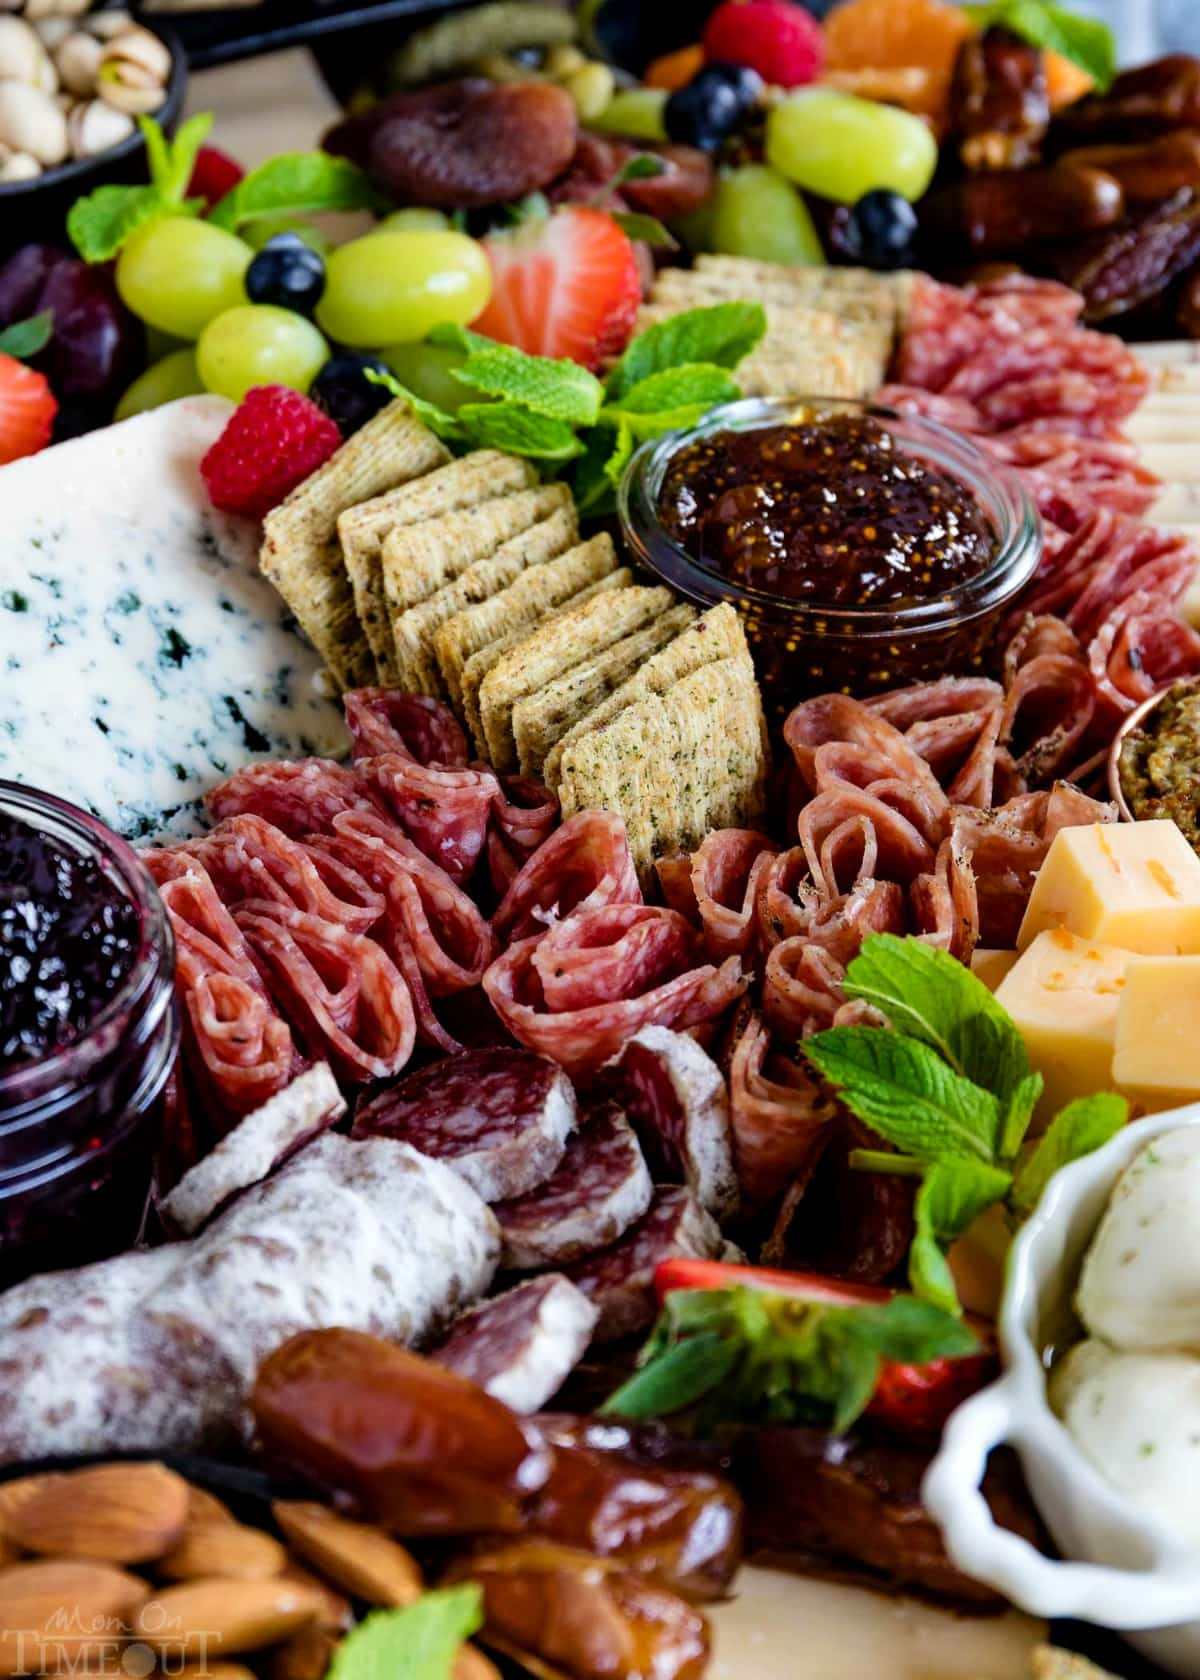 How To Make The Perfect Charcuterie Board - Life's Grape